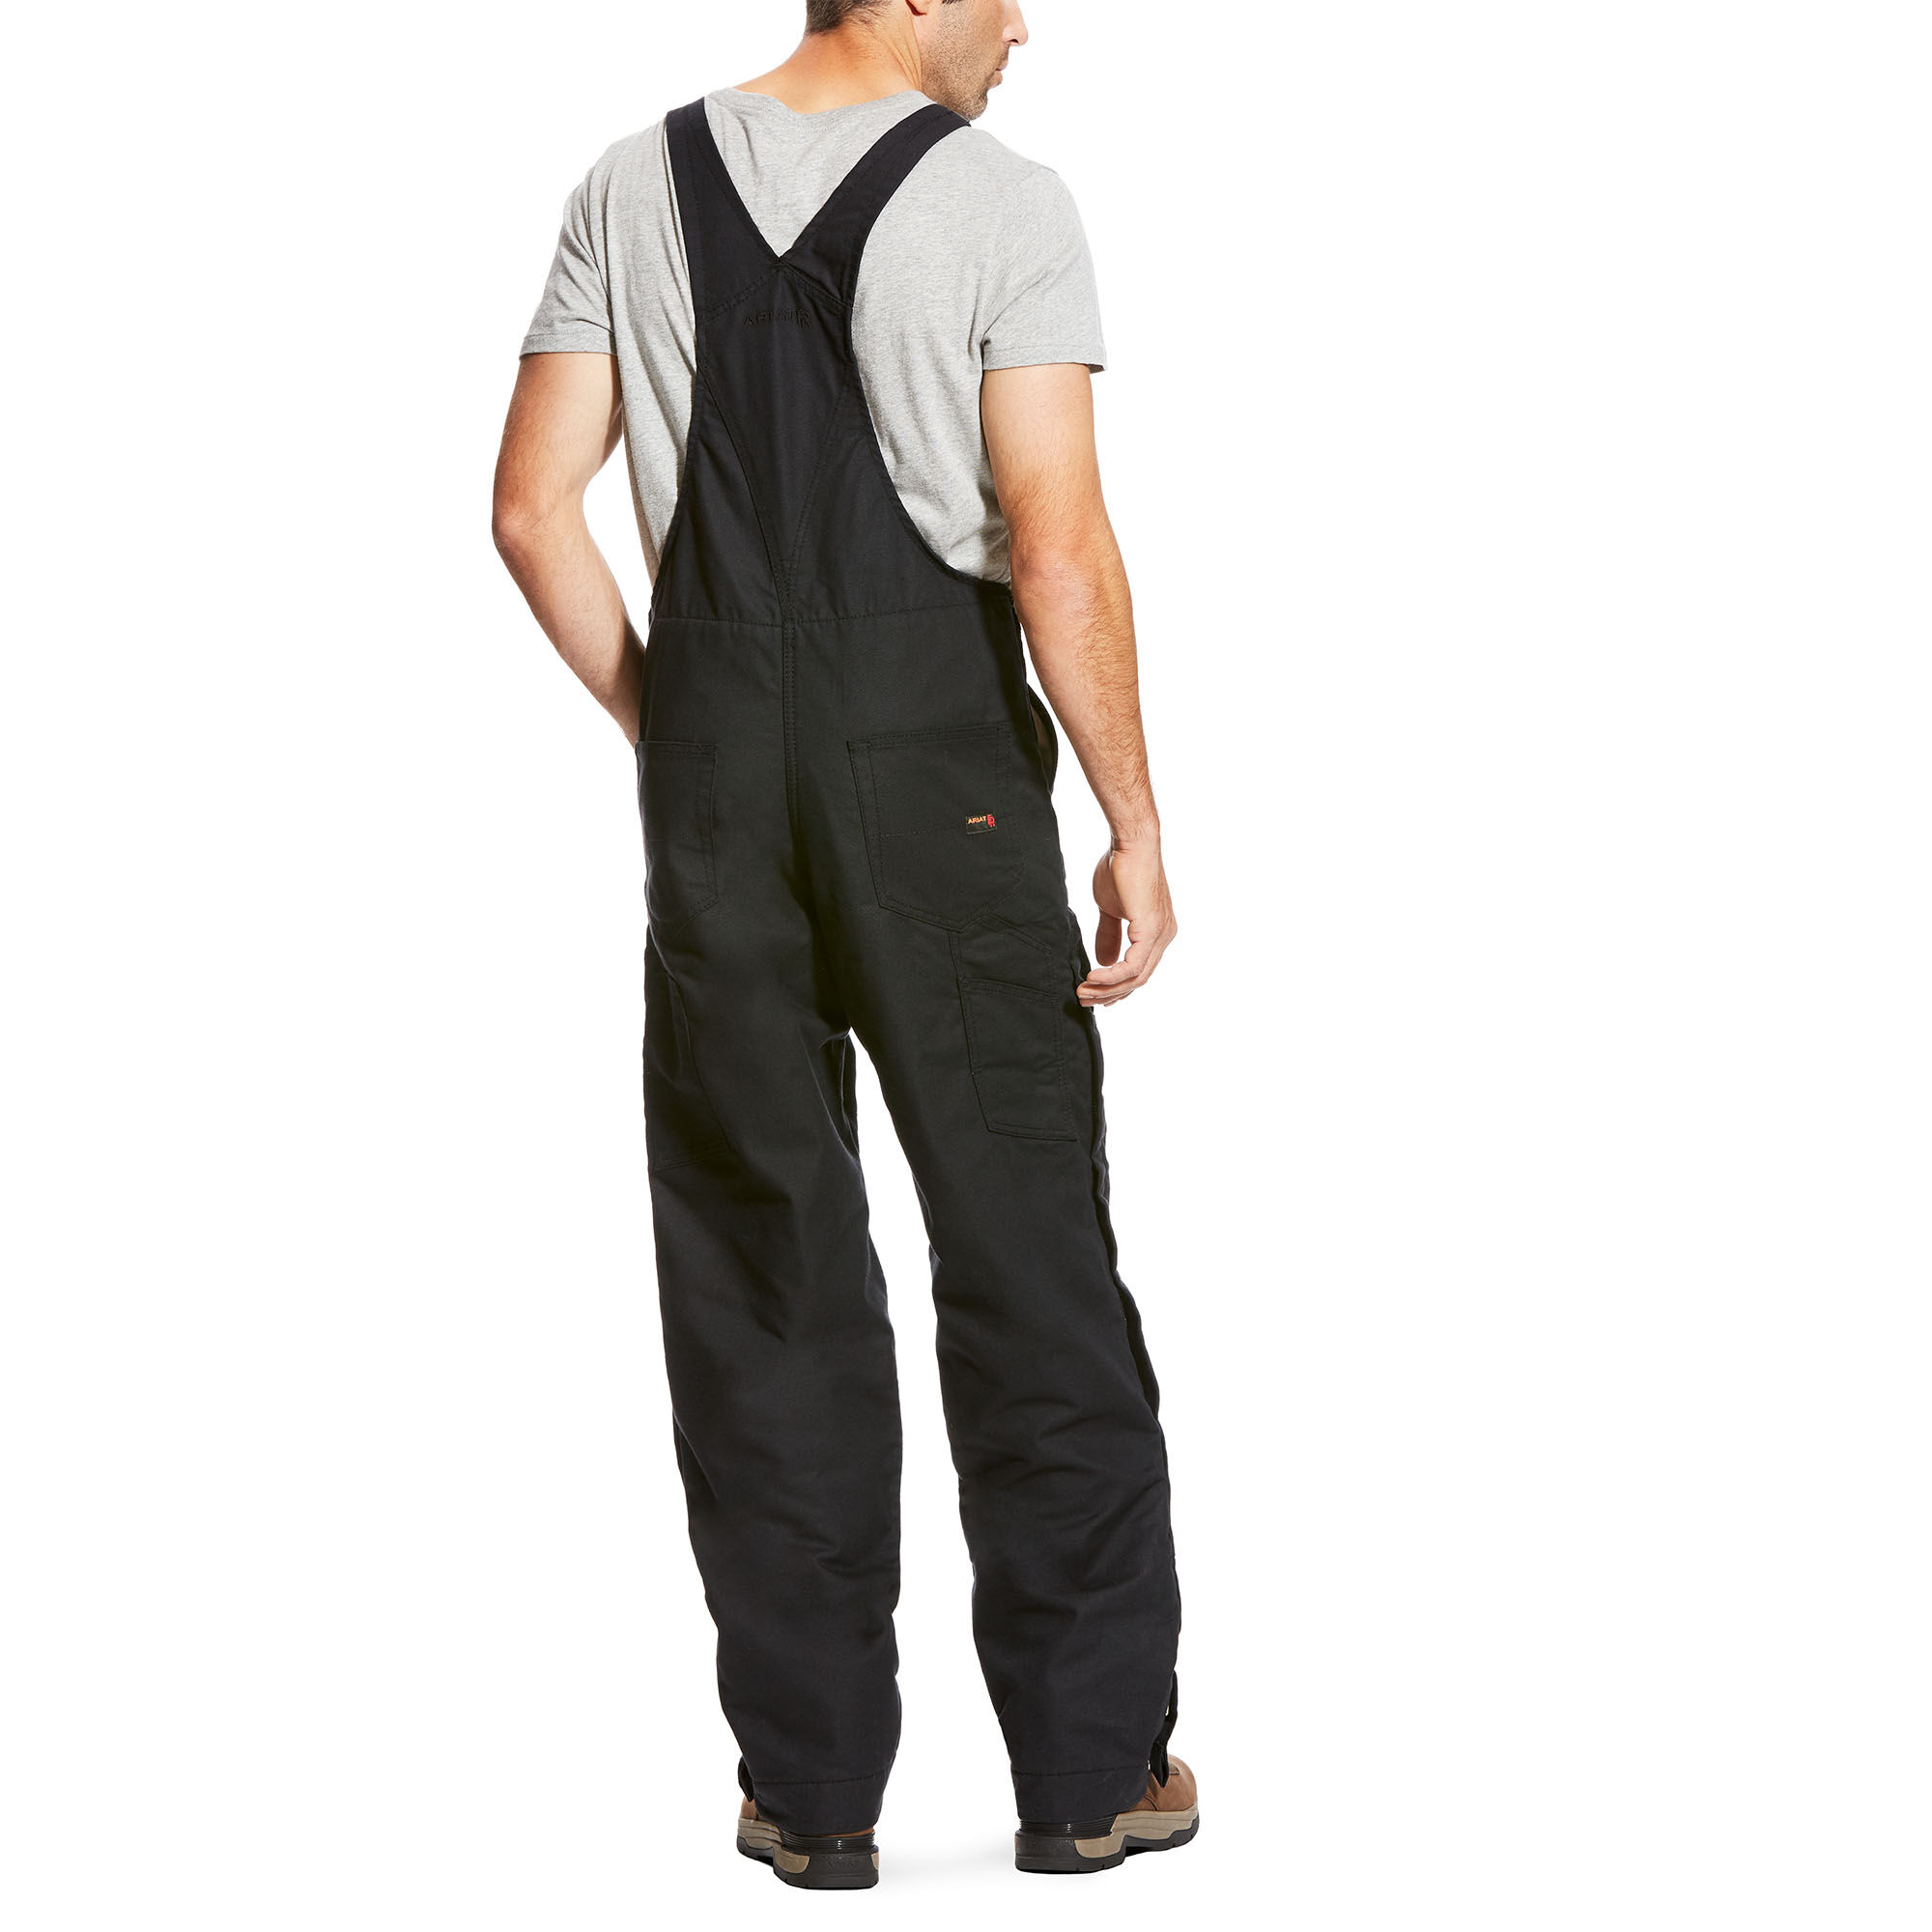 c43b0c9d198 FR Overall 2.0 Insulated Bib